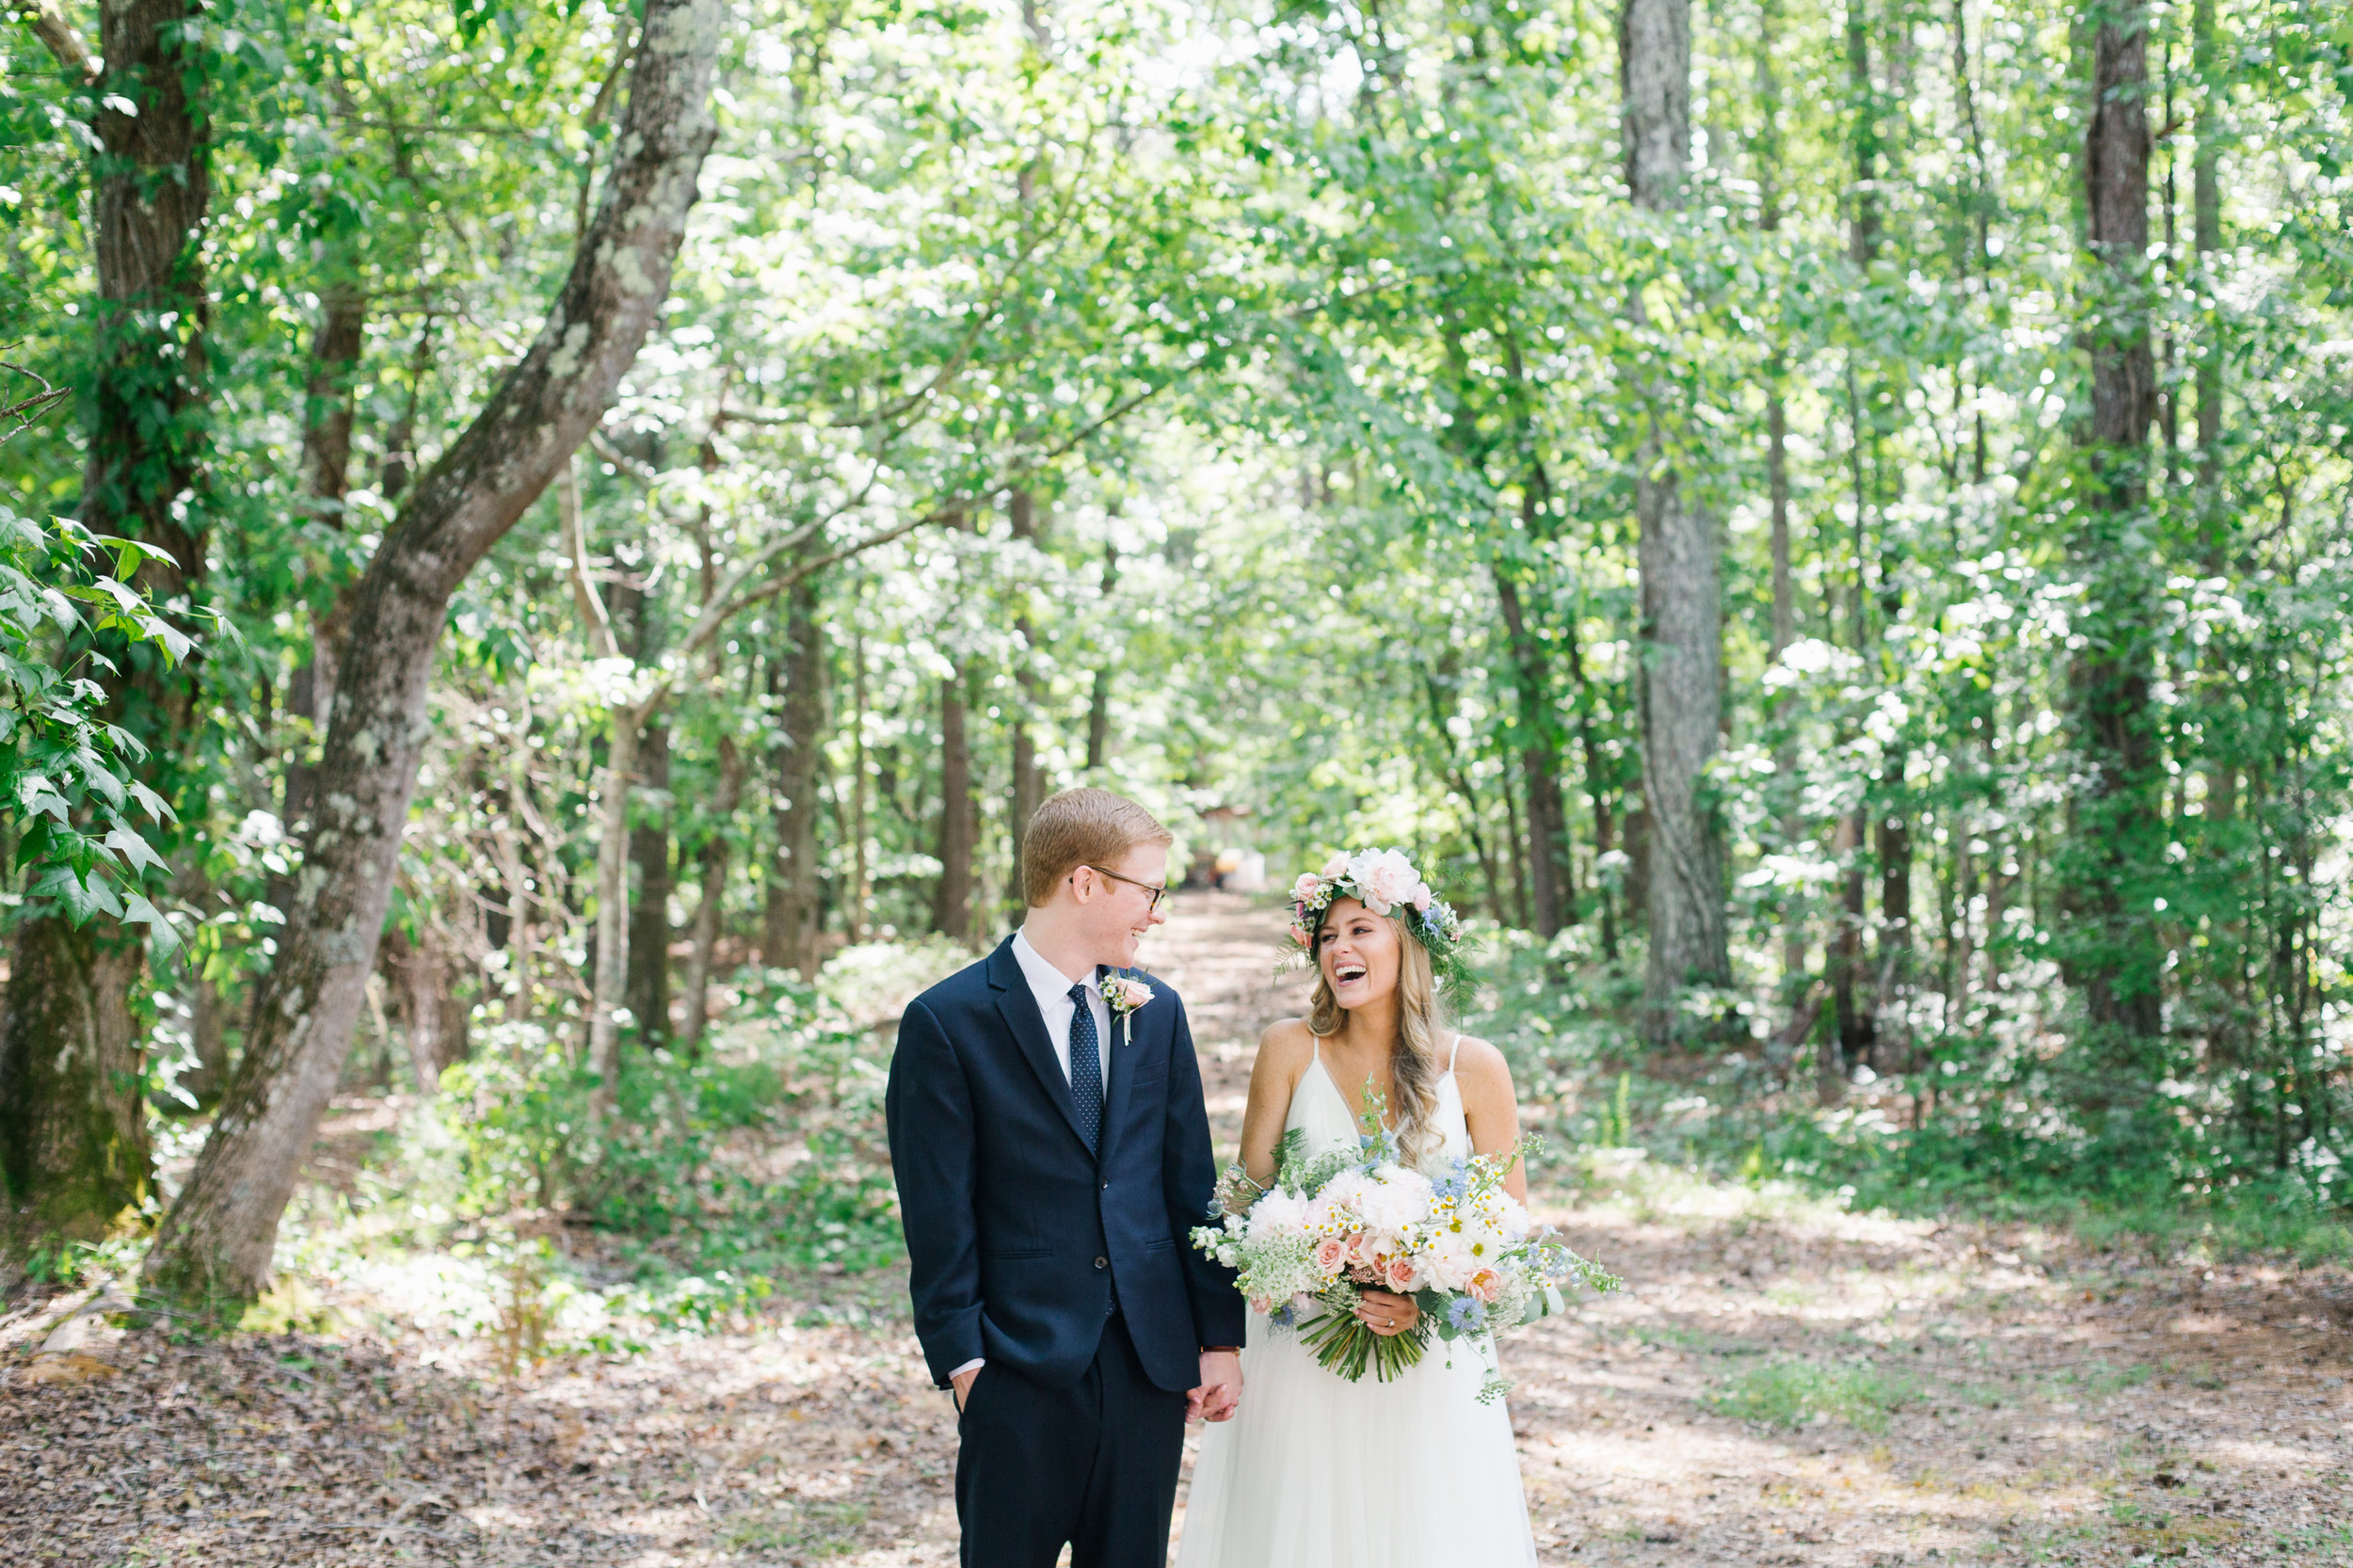 BraunWeddingPreview-26.jpg